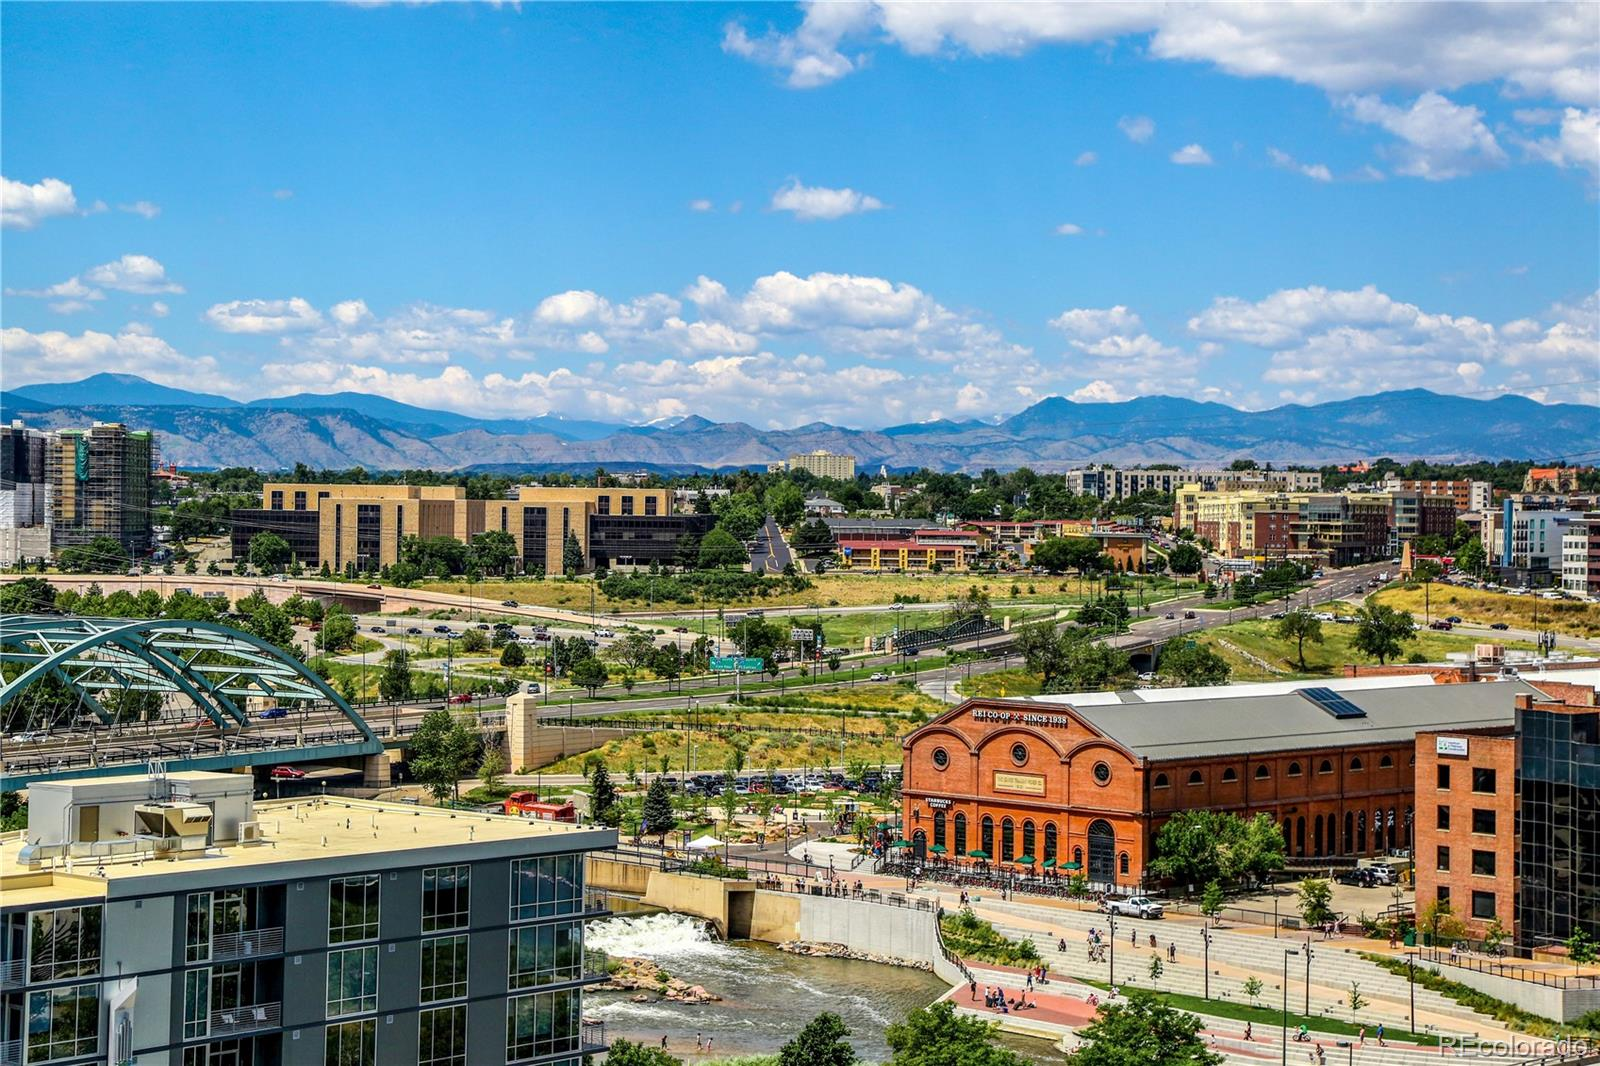 Enjoy a stroll around the park and soak up the Colorado sunshine.